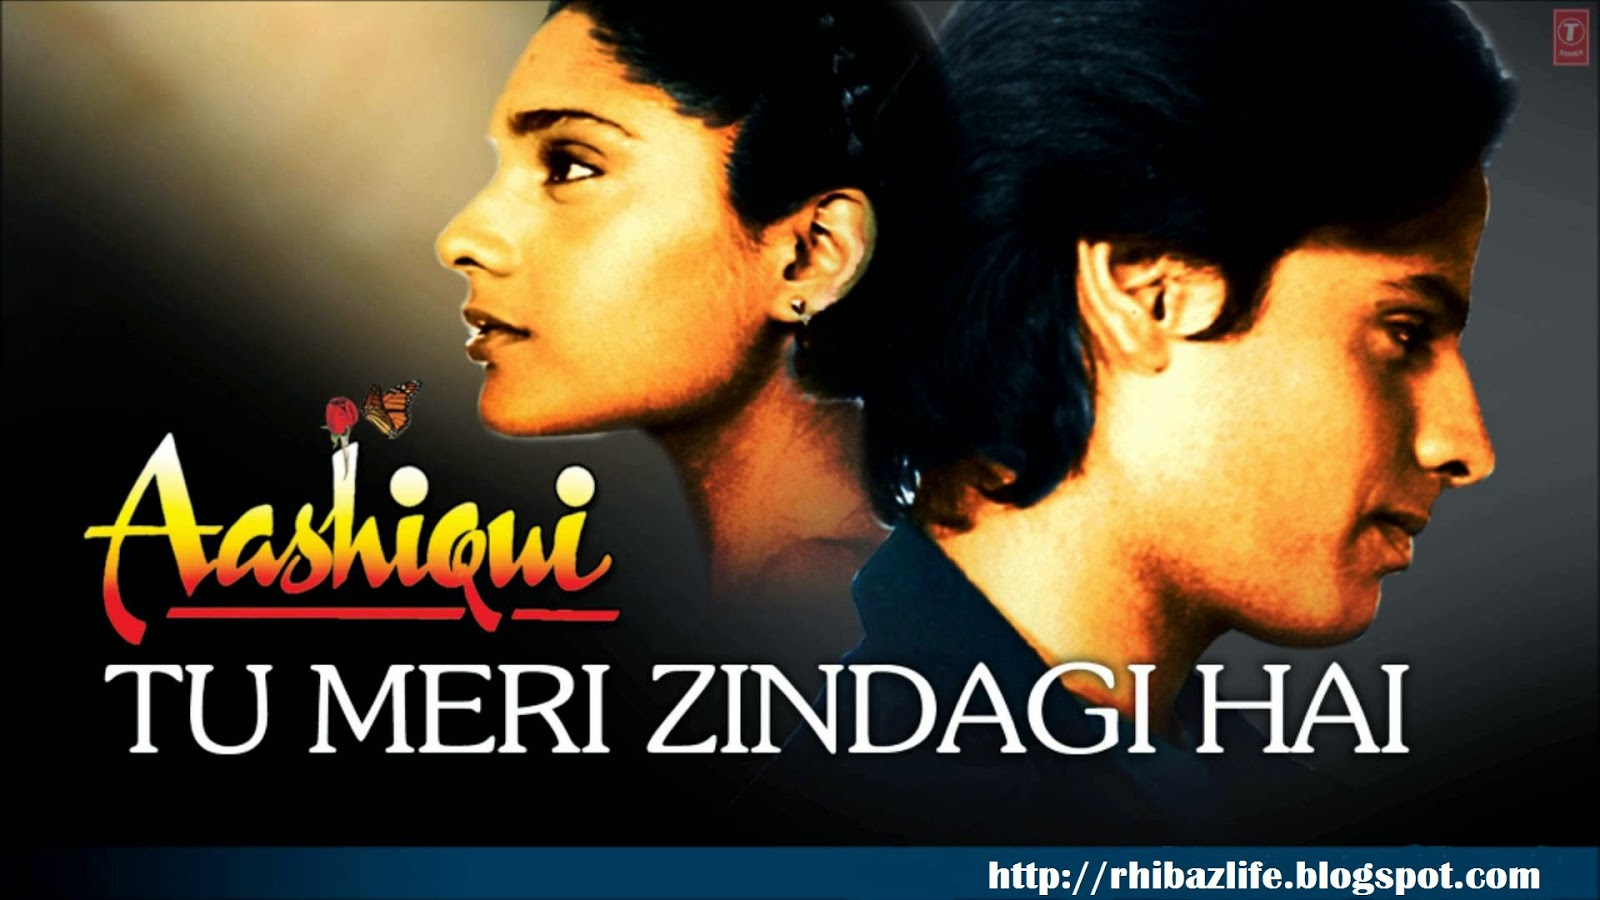 Hindi movie online with subtitles